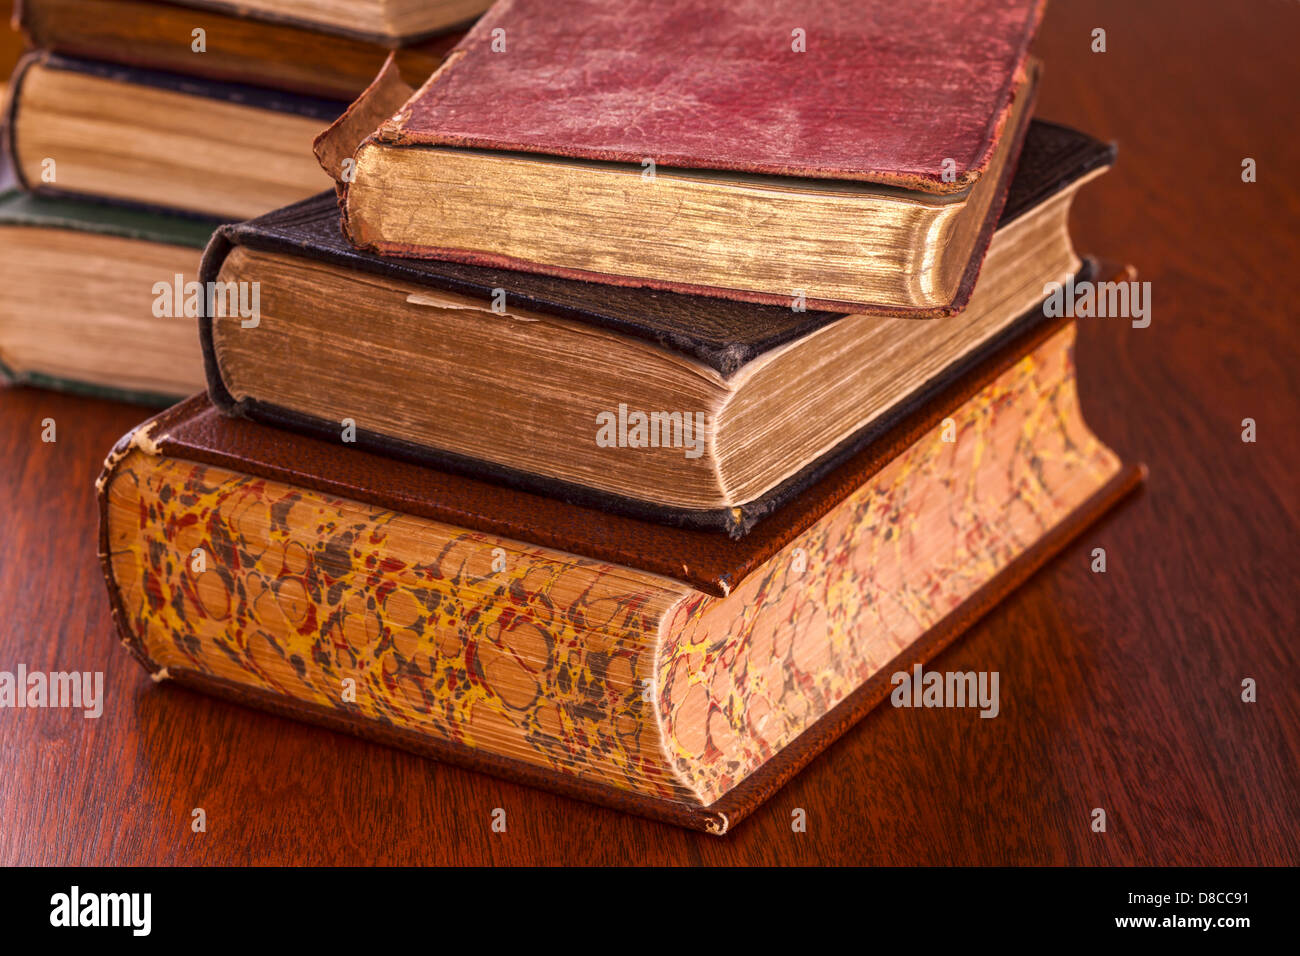 Old Books on Dark Wood Background - battered old books on a dark oak table, focus on foreground. - Stock Image